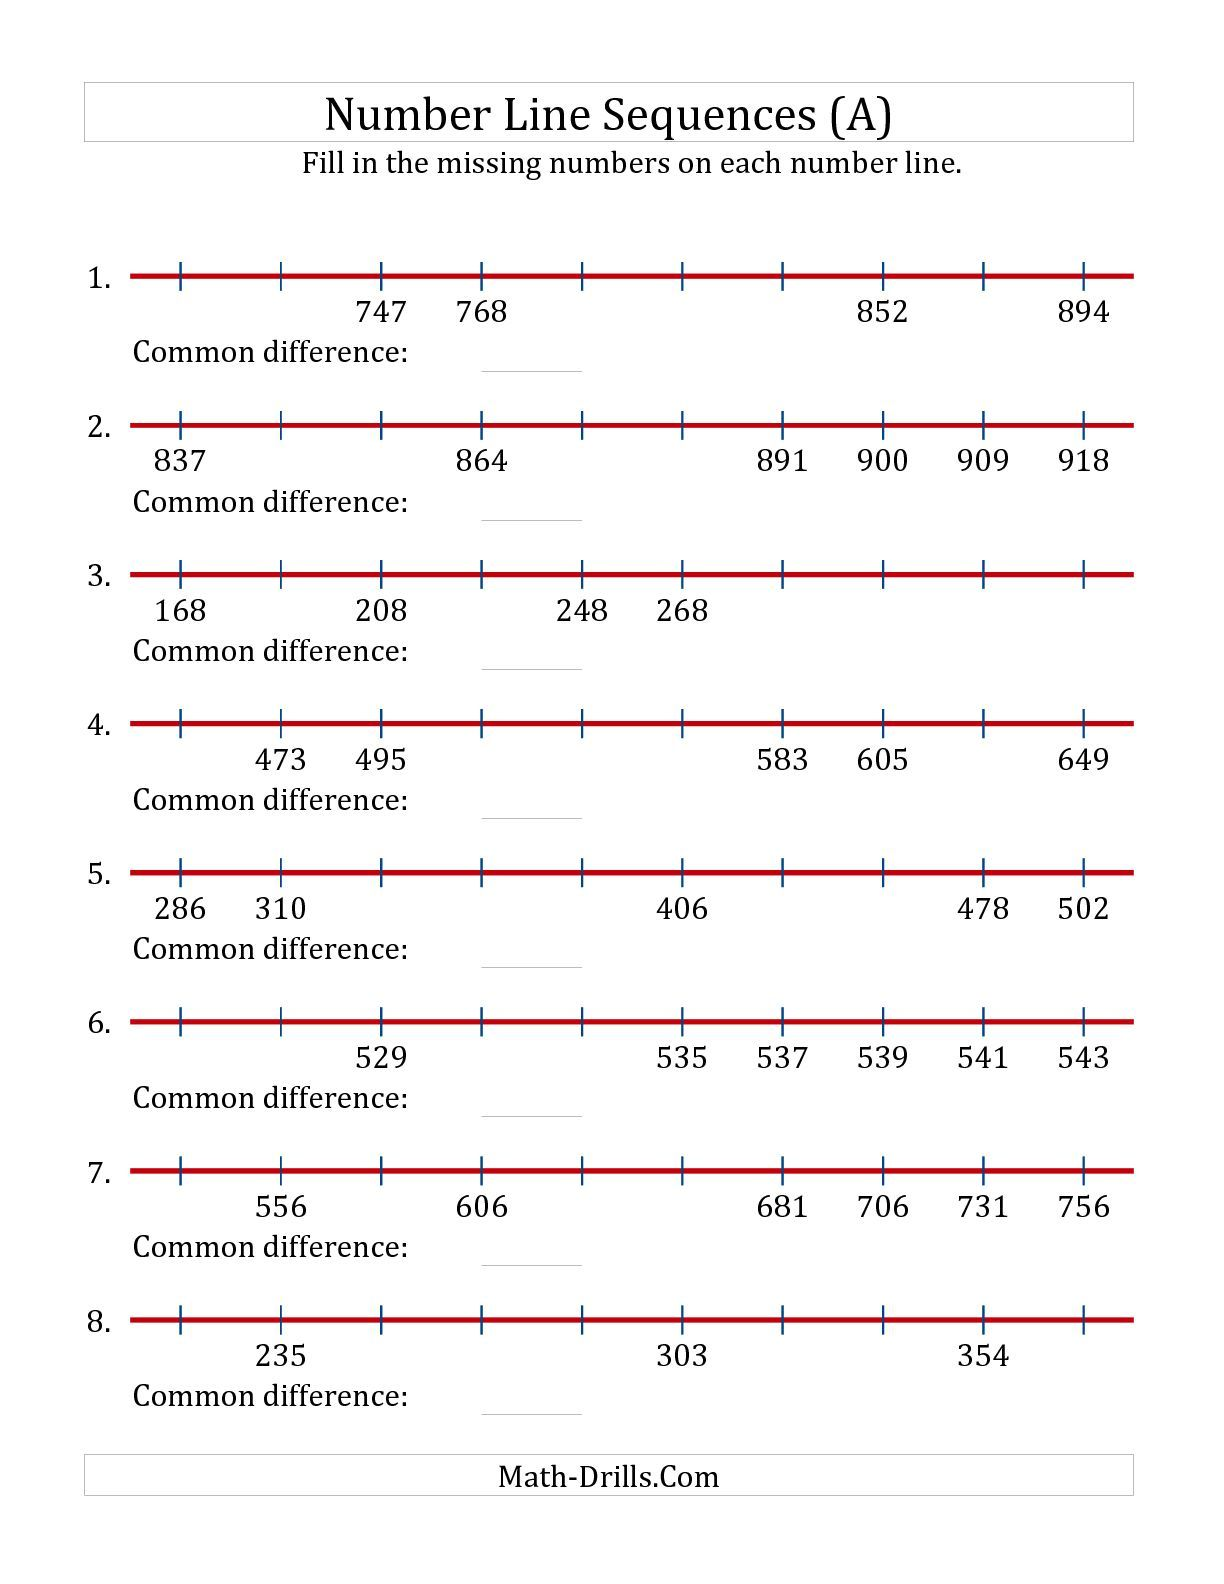 The Increasing Number Line Sequences With Missing Numbers